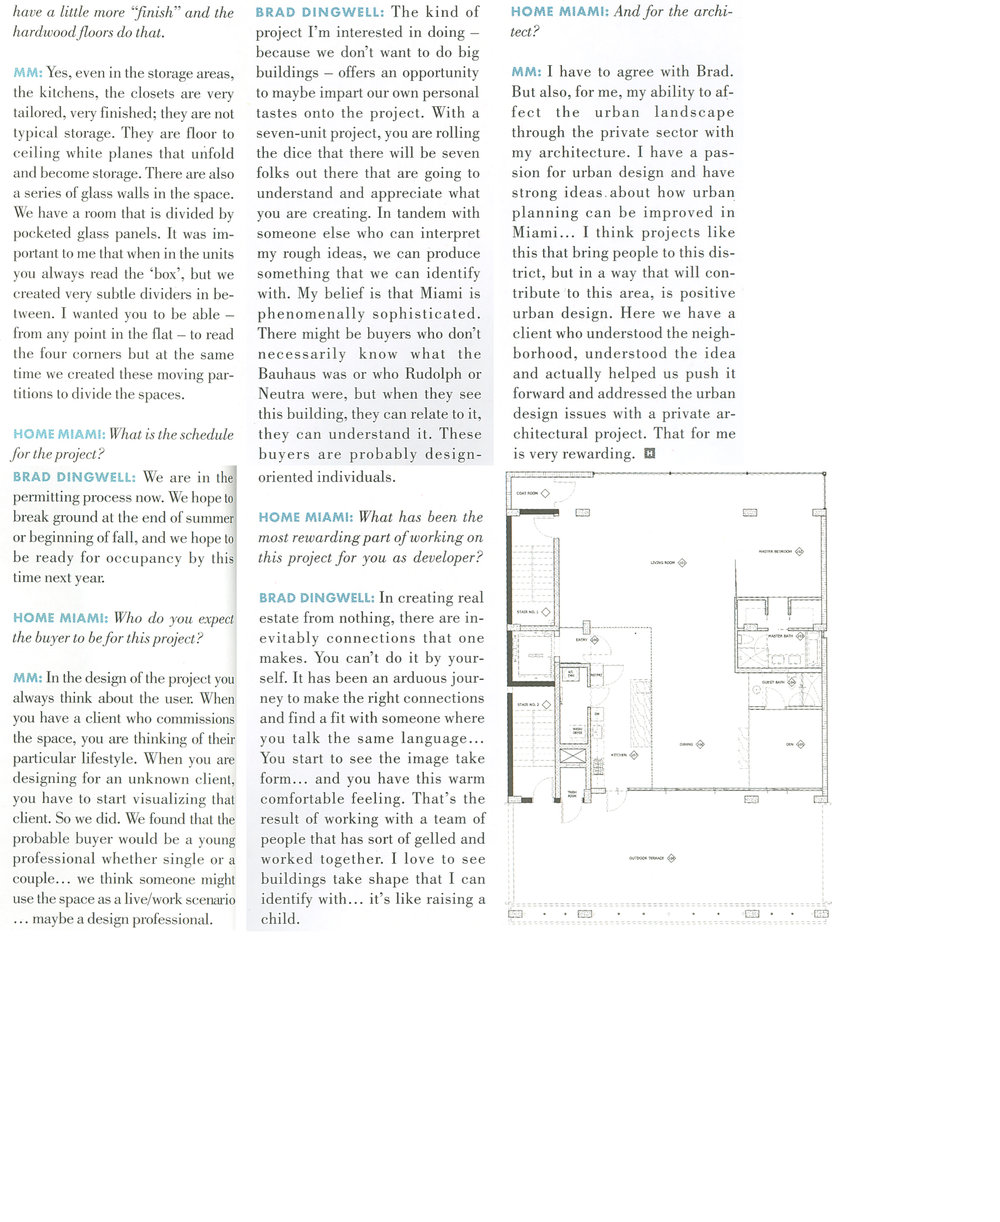 July04 page 6and7.jpg